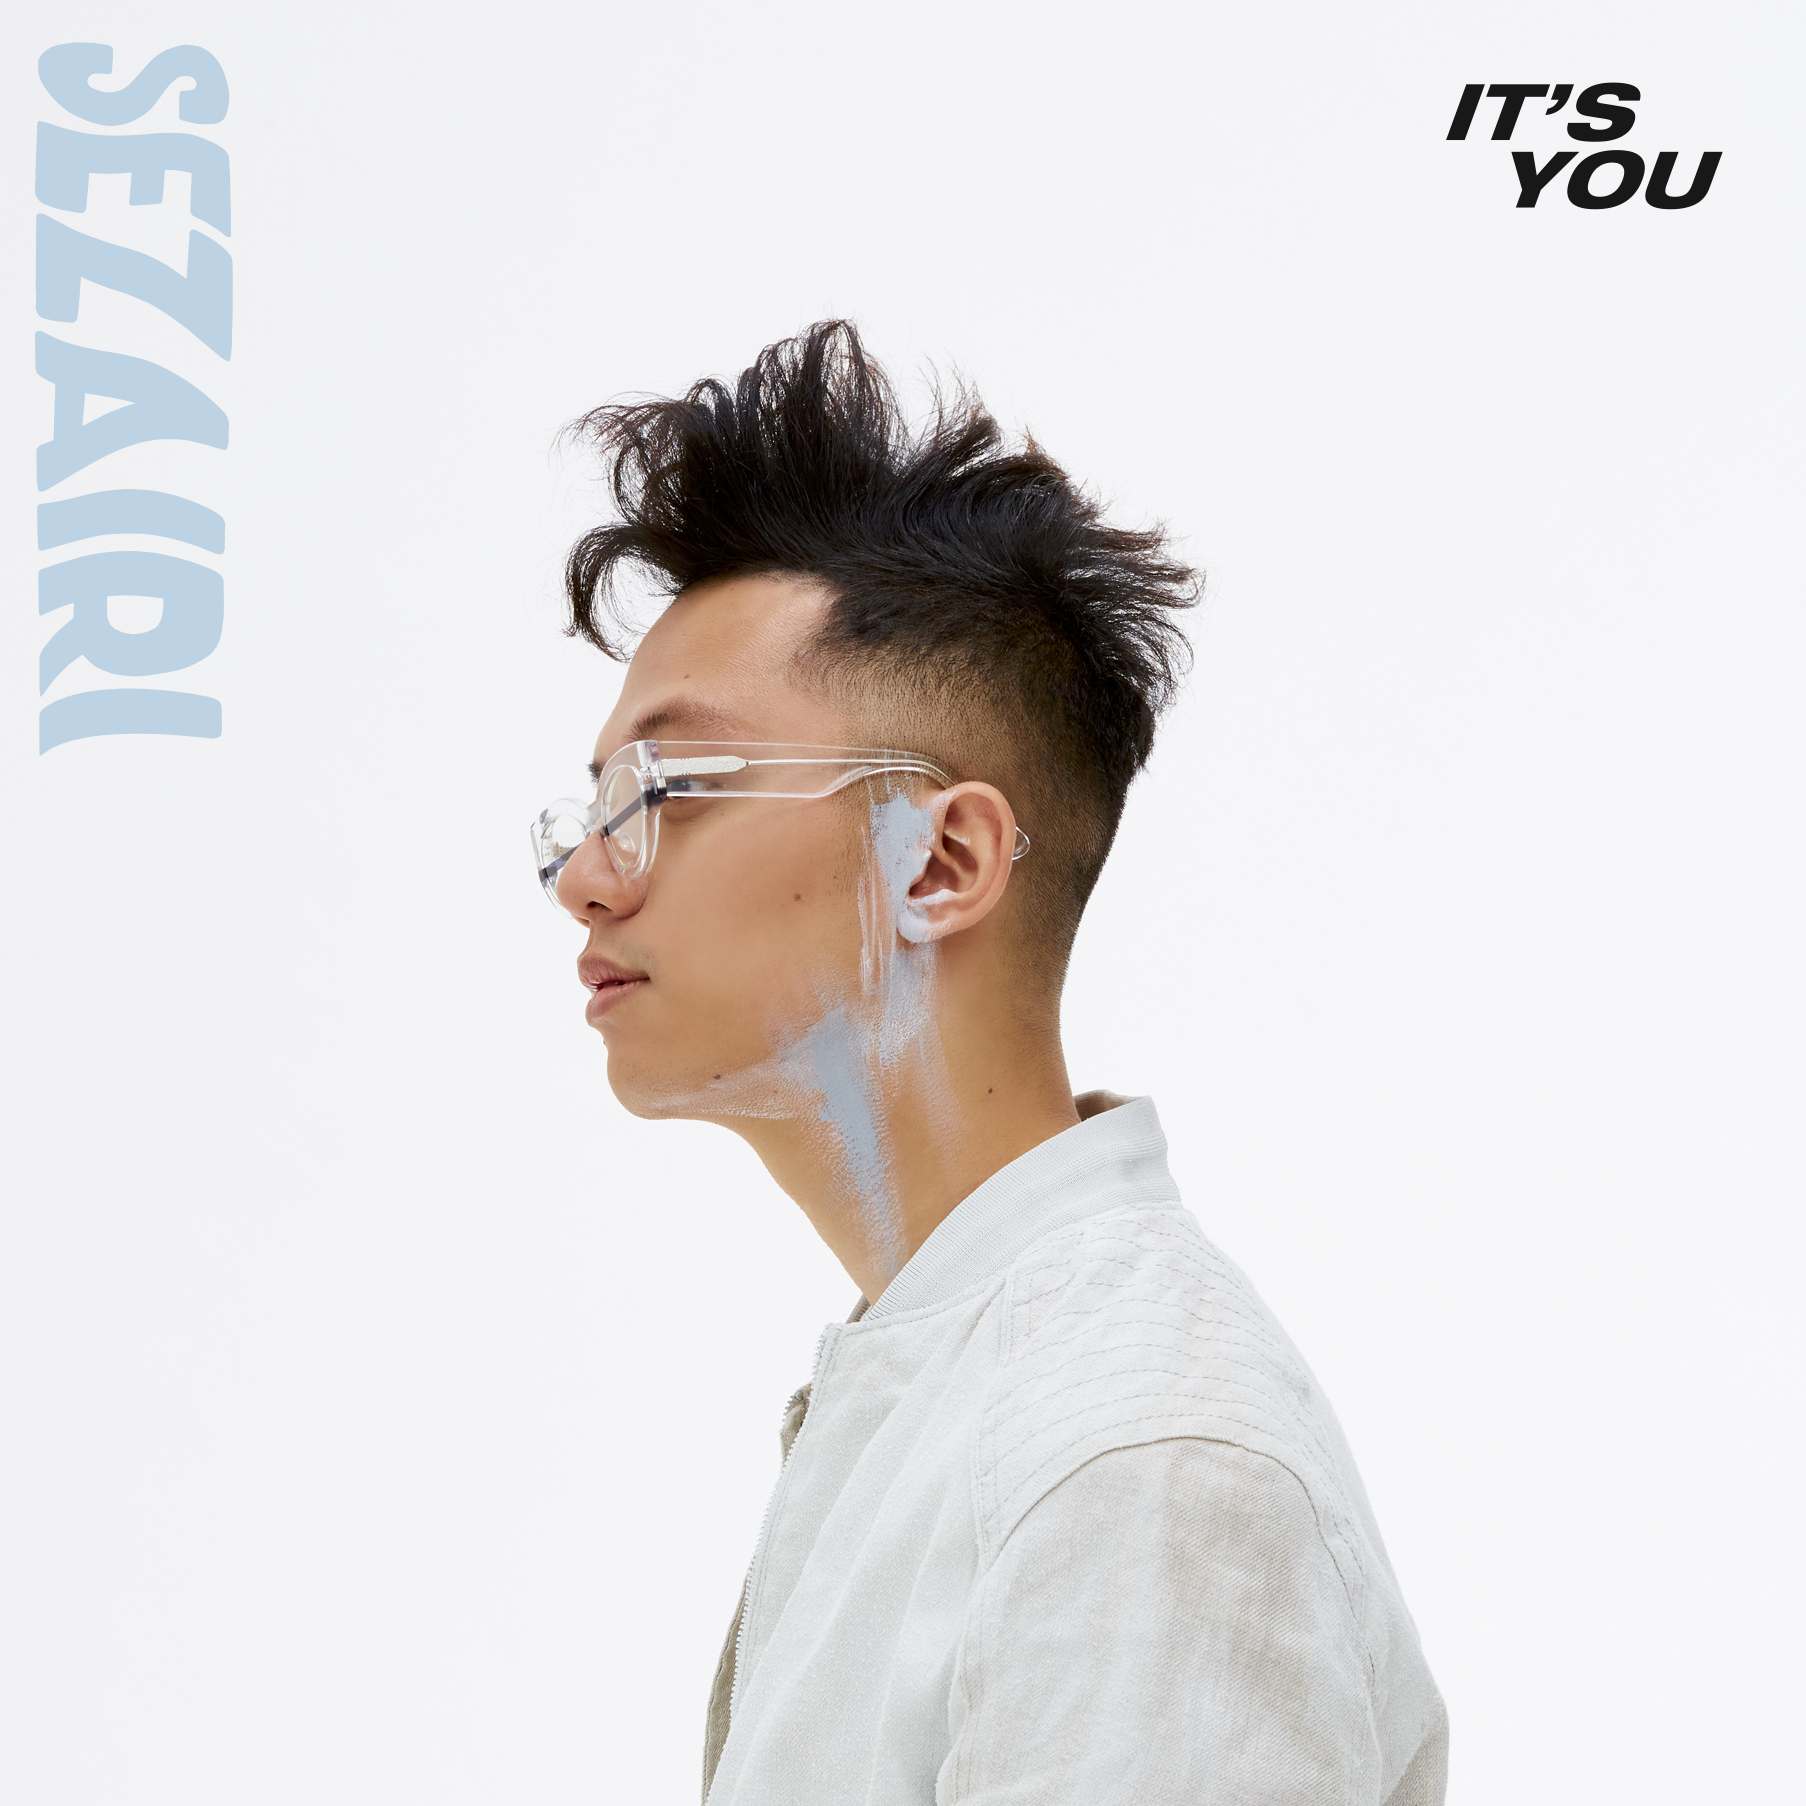 """Sezairi Dominates Streaming Charts in Asia with Global Hit """"It's You"""""""